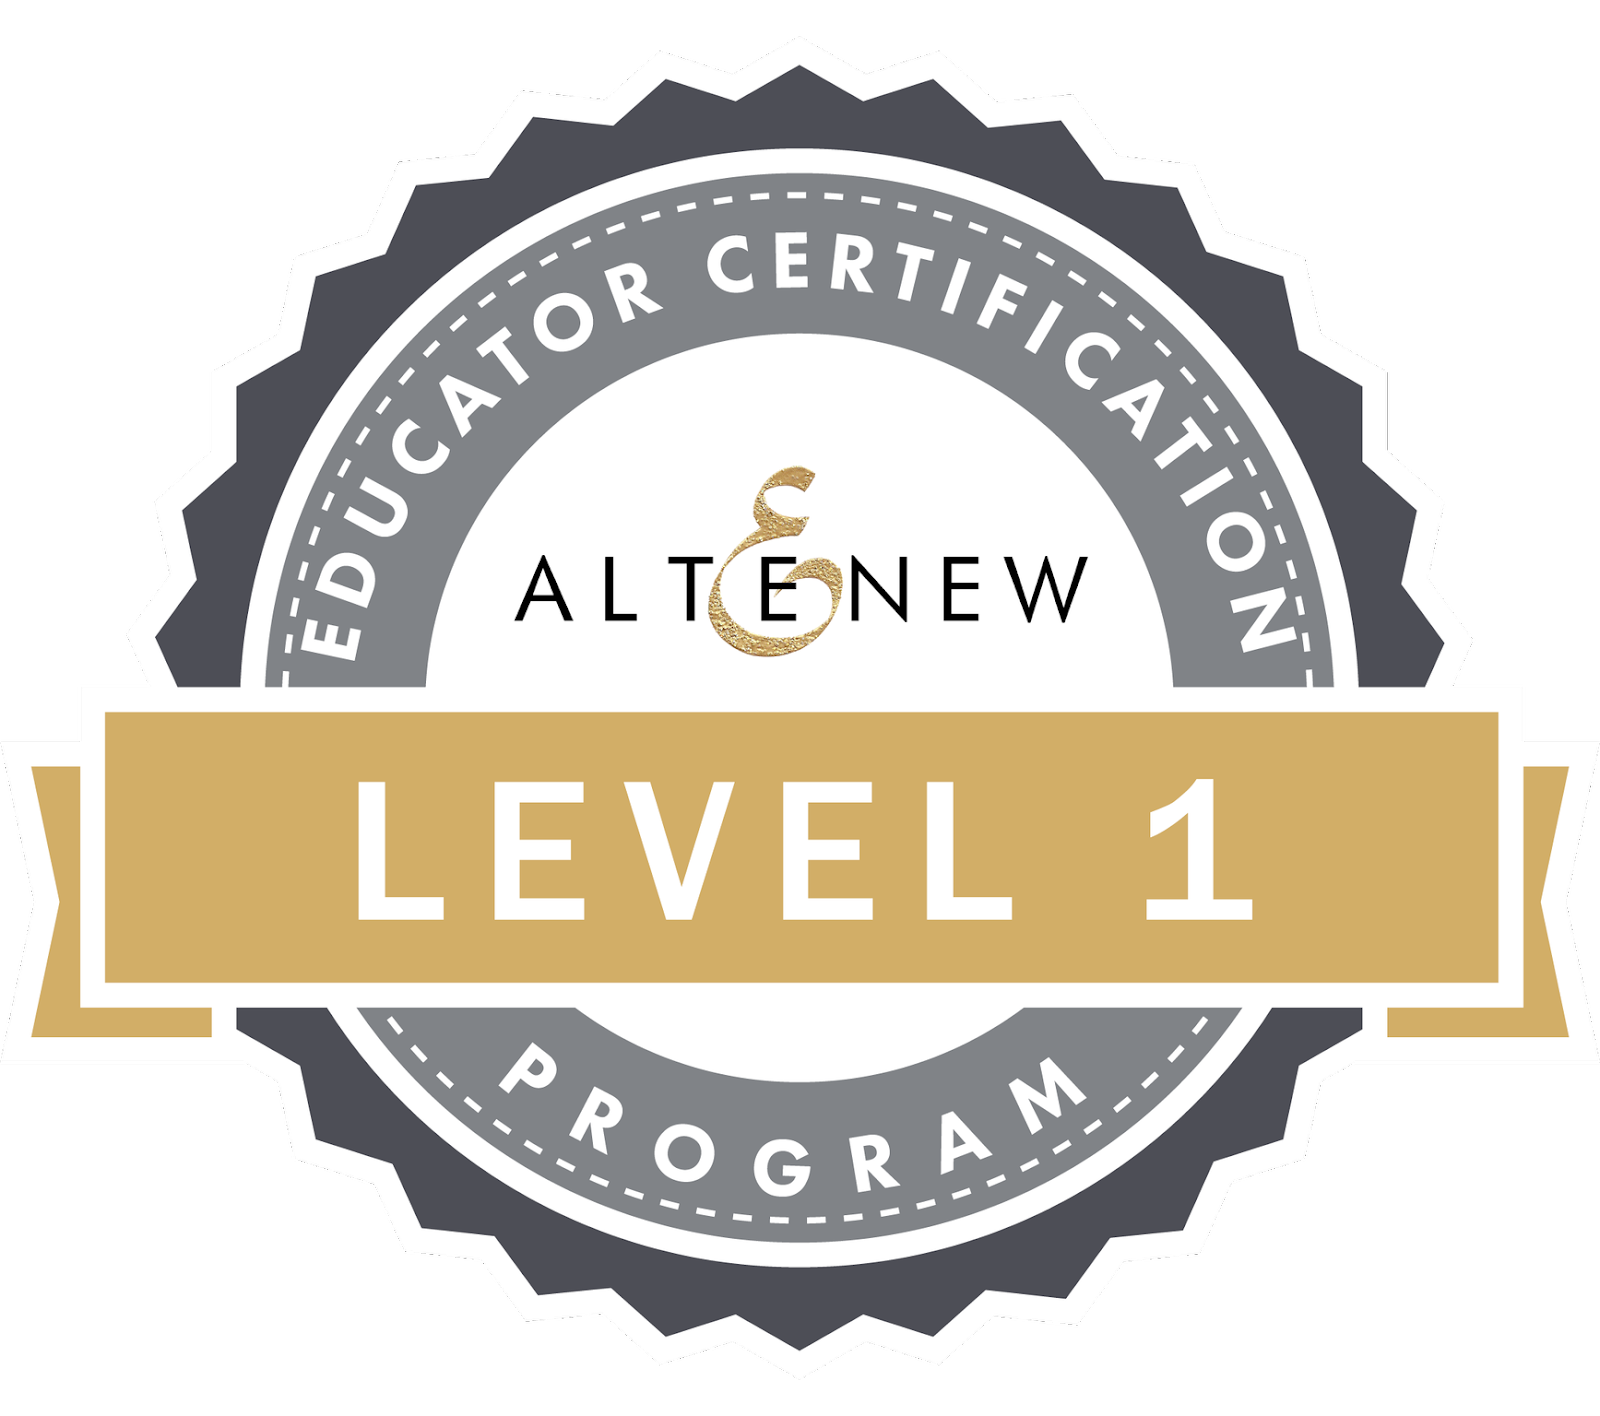 Altenew Educator Certification Program Level 1